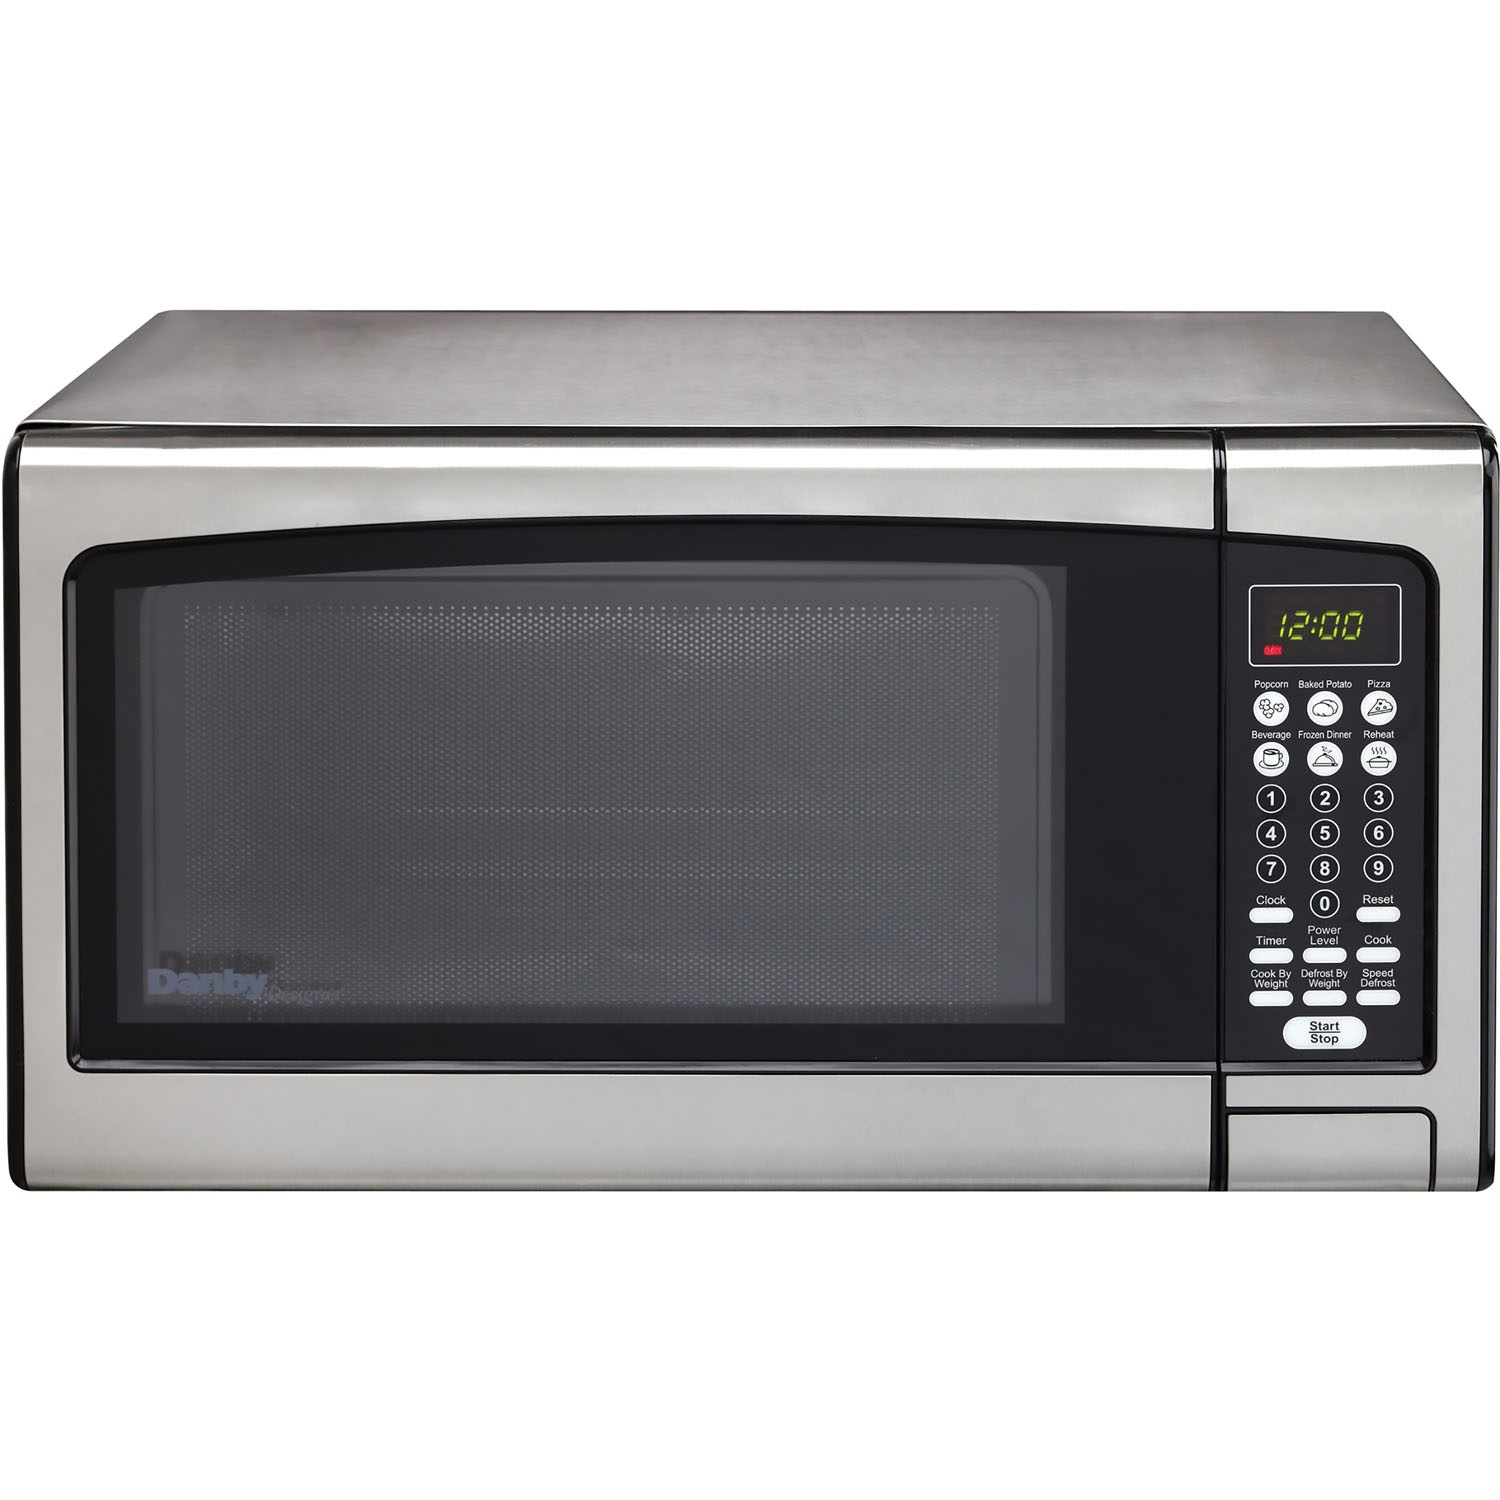 Microwave Oven Stainless Steel: Danby Designer 1.1 Cu. Ft. Microwave Oven In Stainless